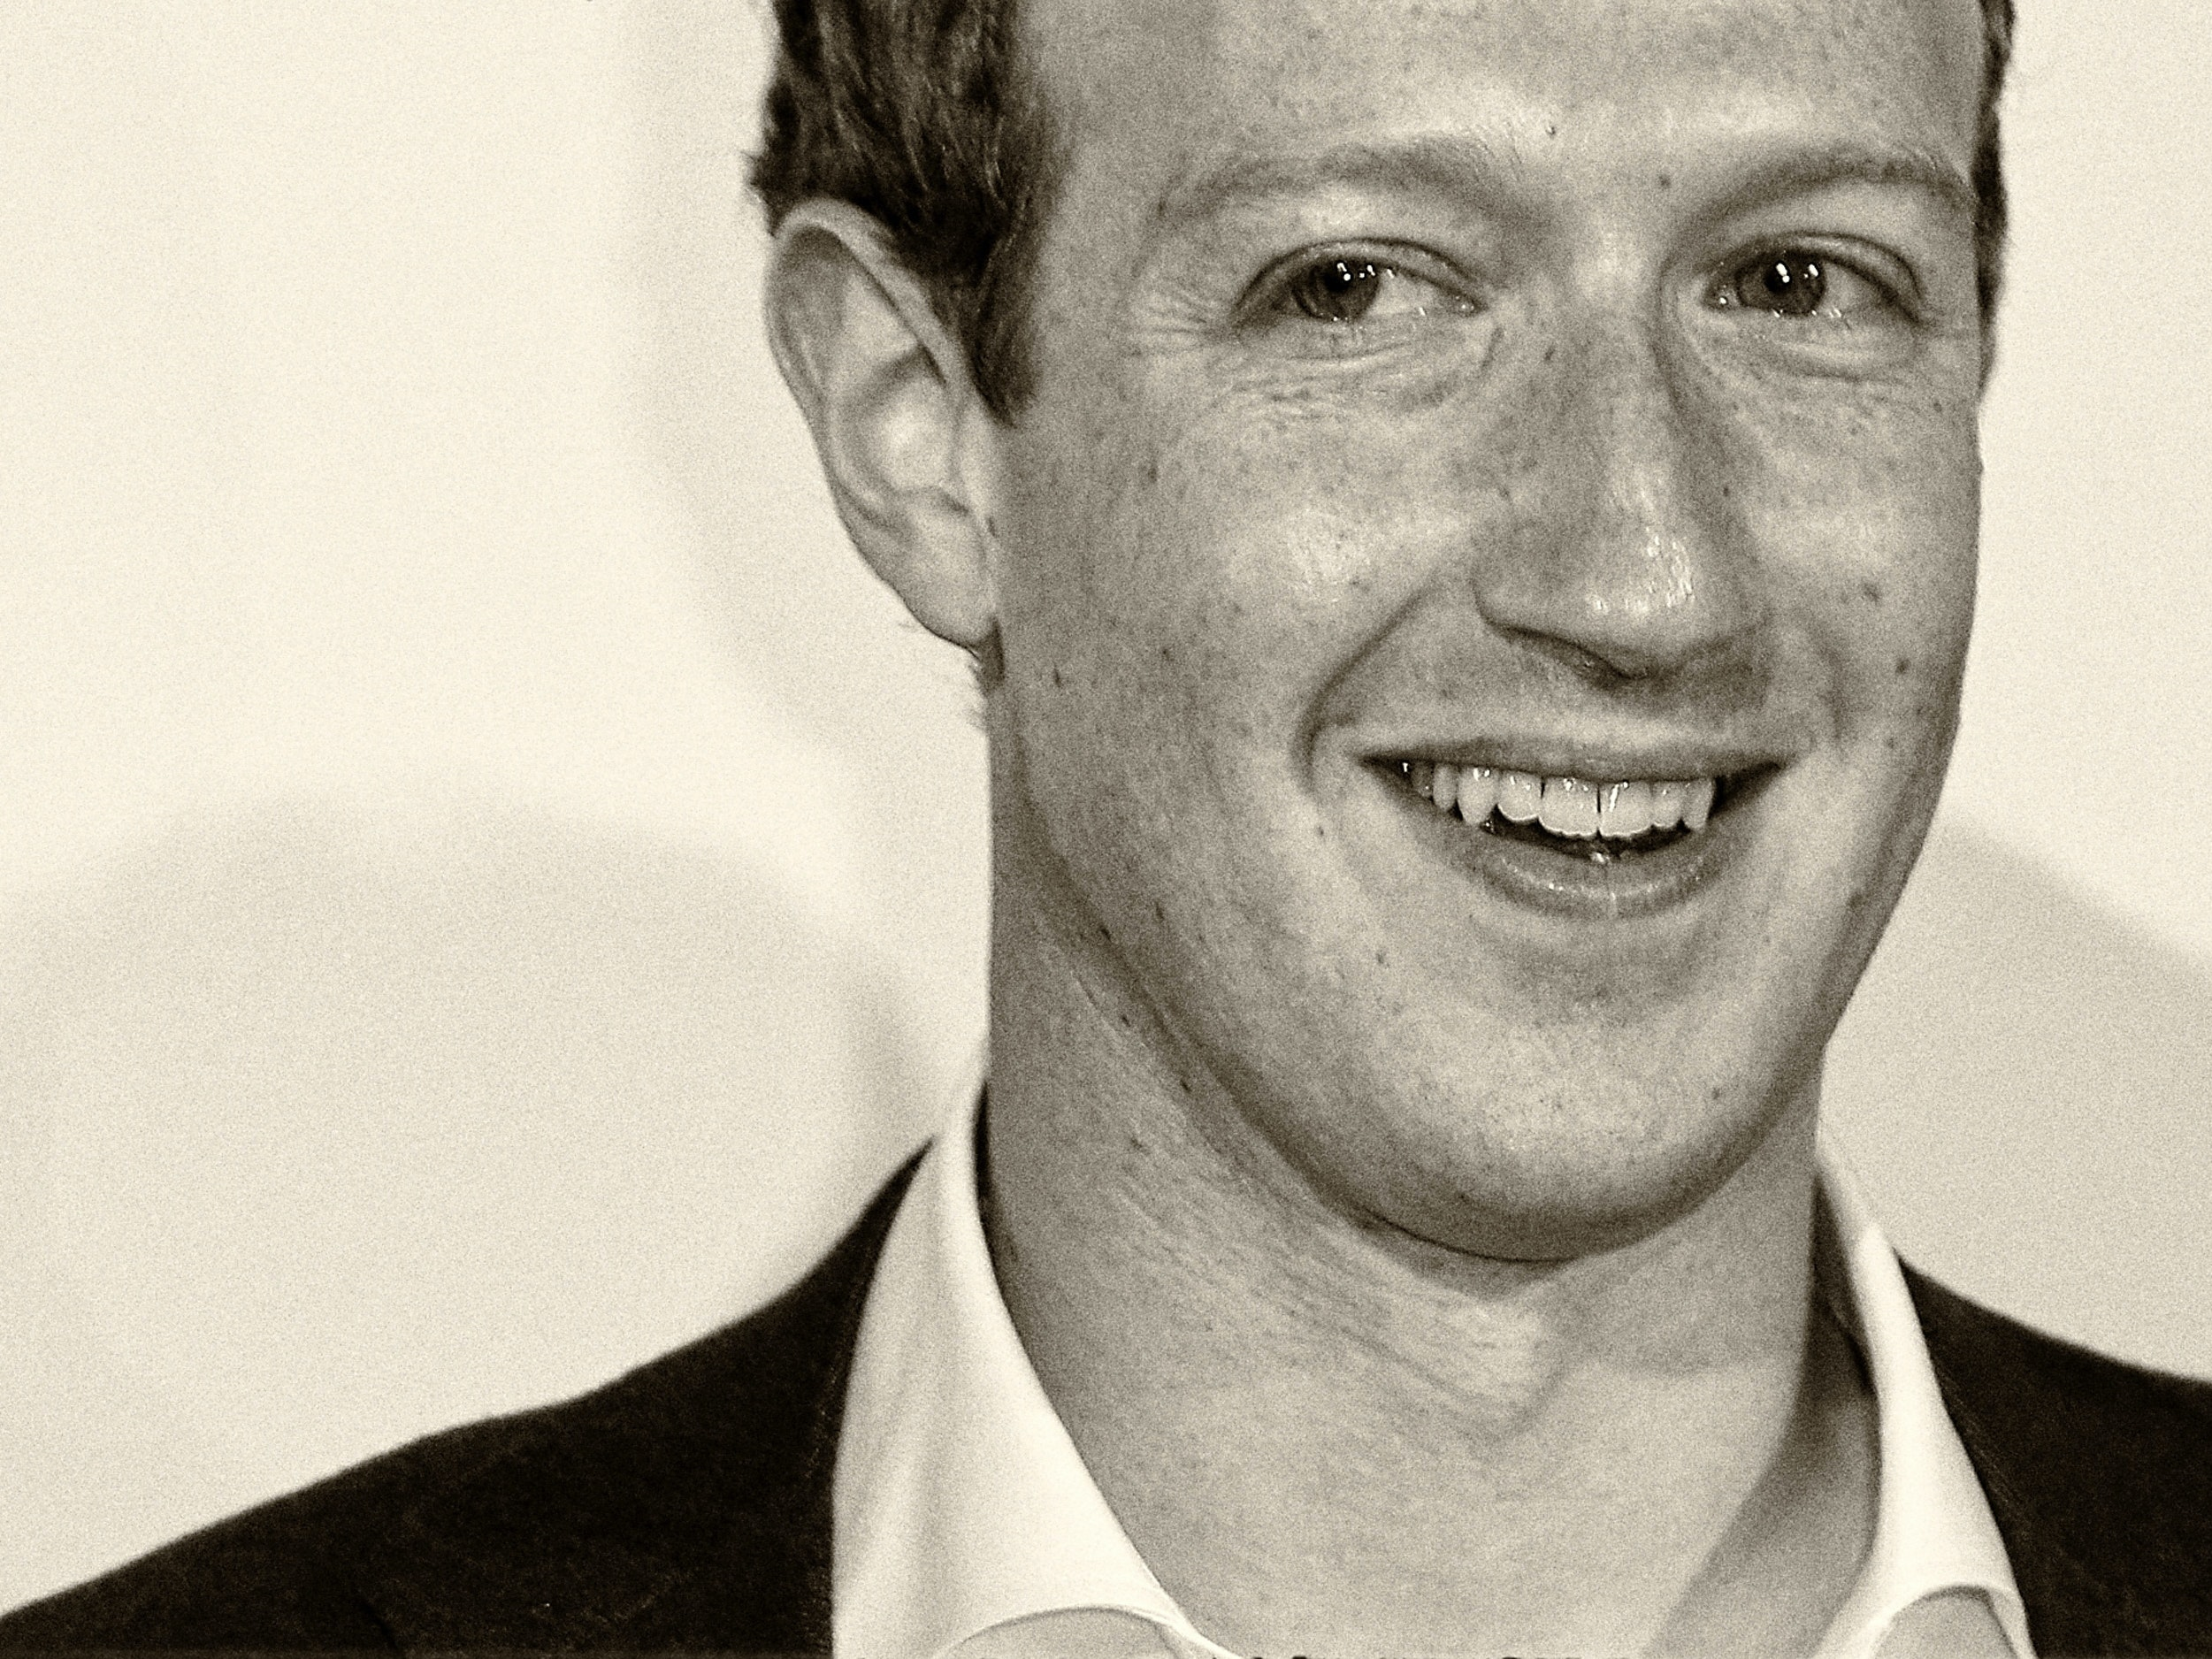 Facebook's 5 Biggest App Flops in Its Quest to Outdo Snapchat